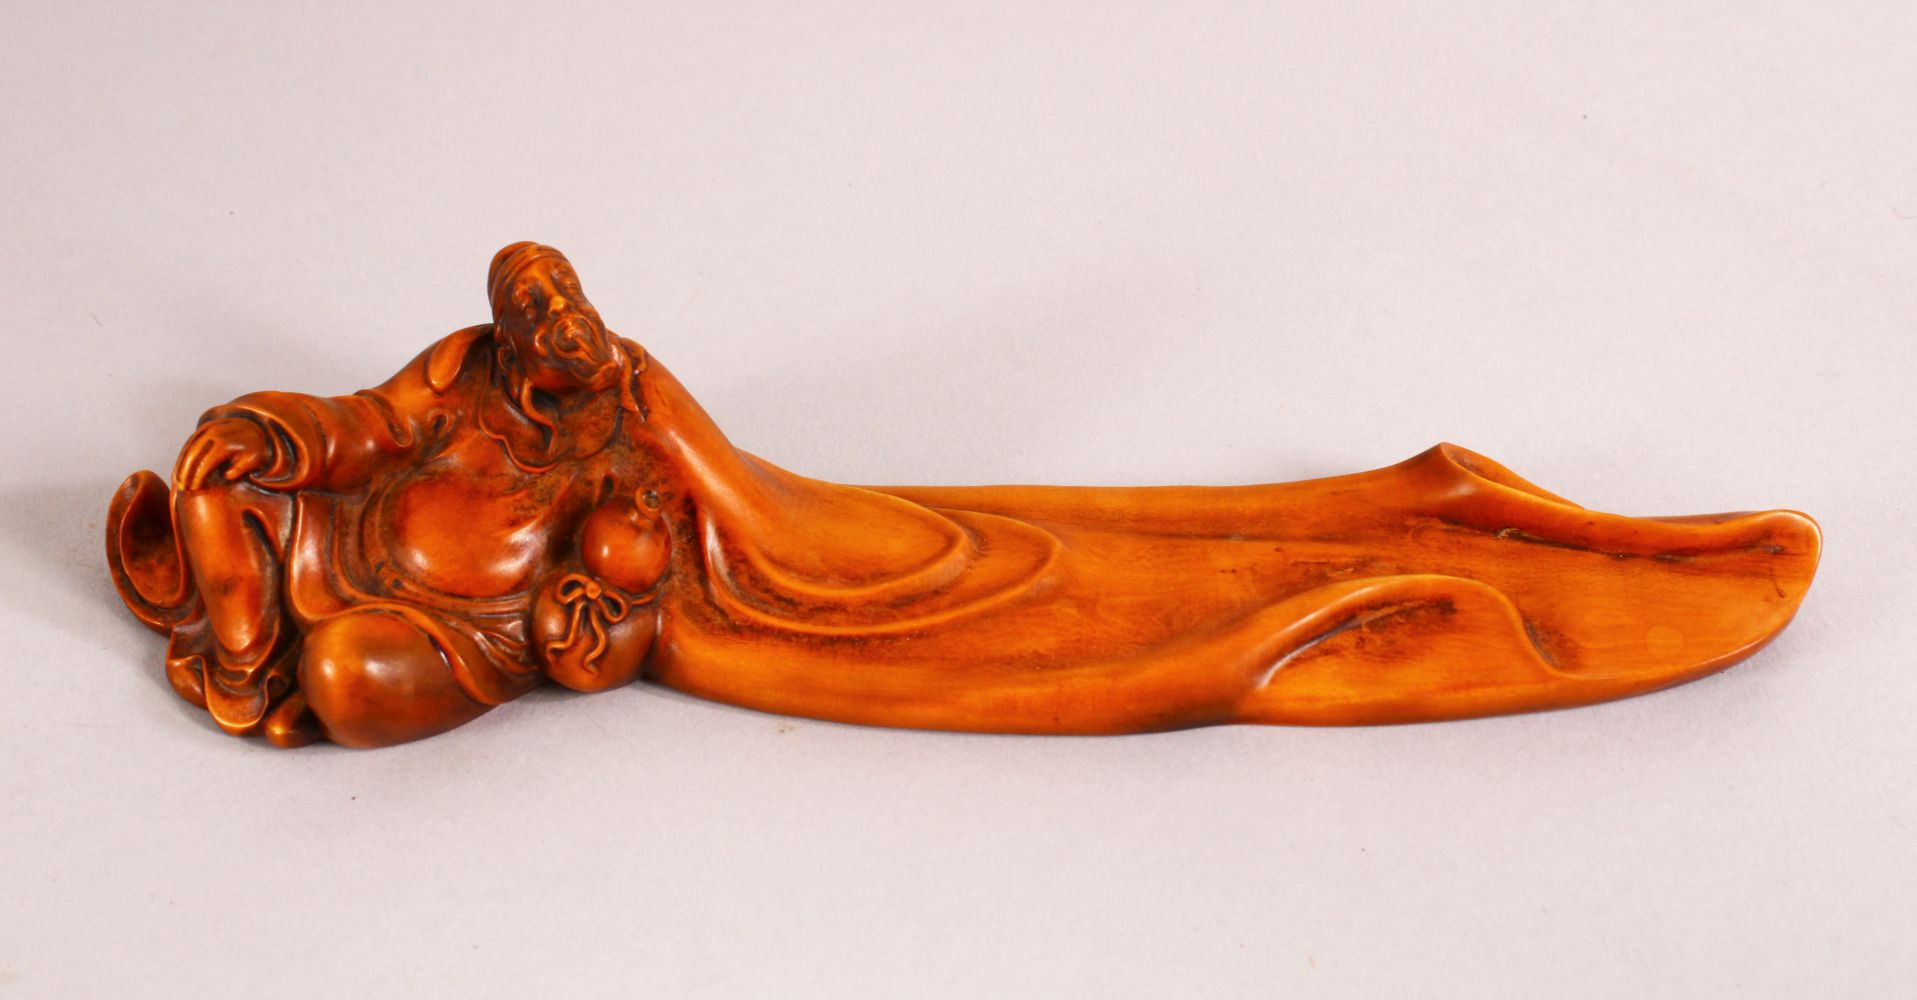 50A CHINESE CARVED WOOD FIGURE OF ROHAN OR IMMORTAL, seated with a drinking vessel, 20cm